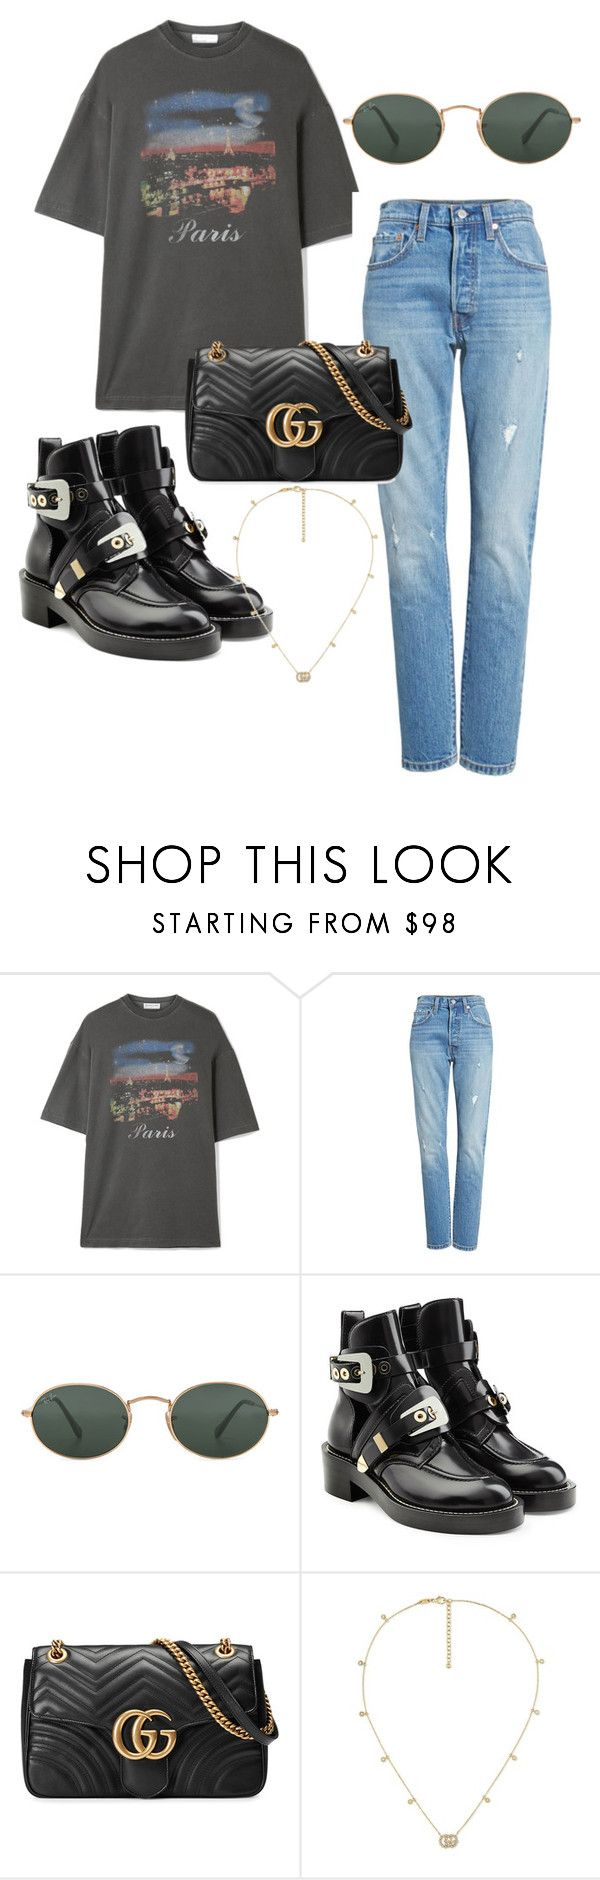 """""""Untitled #341"""" by stoutjami on Polyvore featuring Balenciaga, Levi's, Ray-Ban and Gucci"""